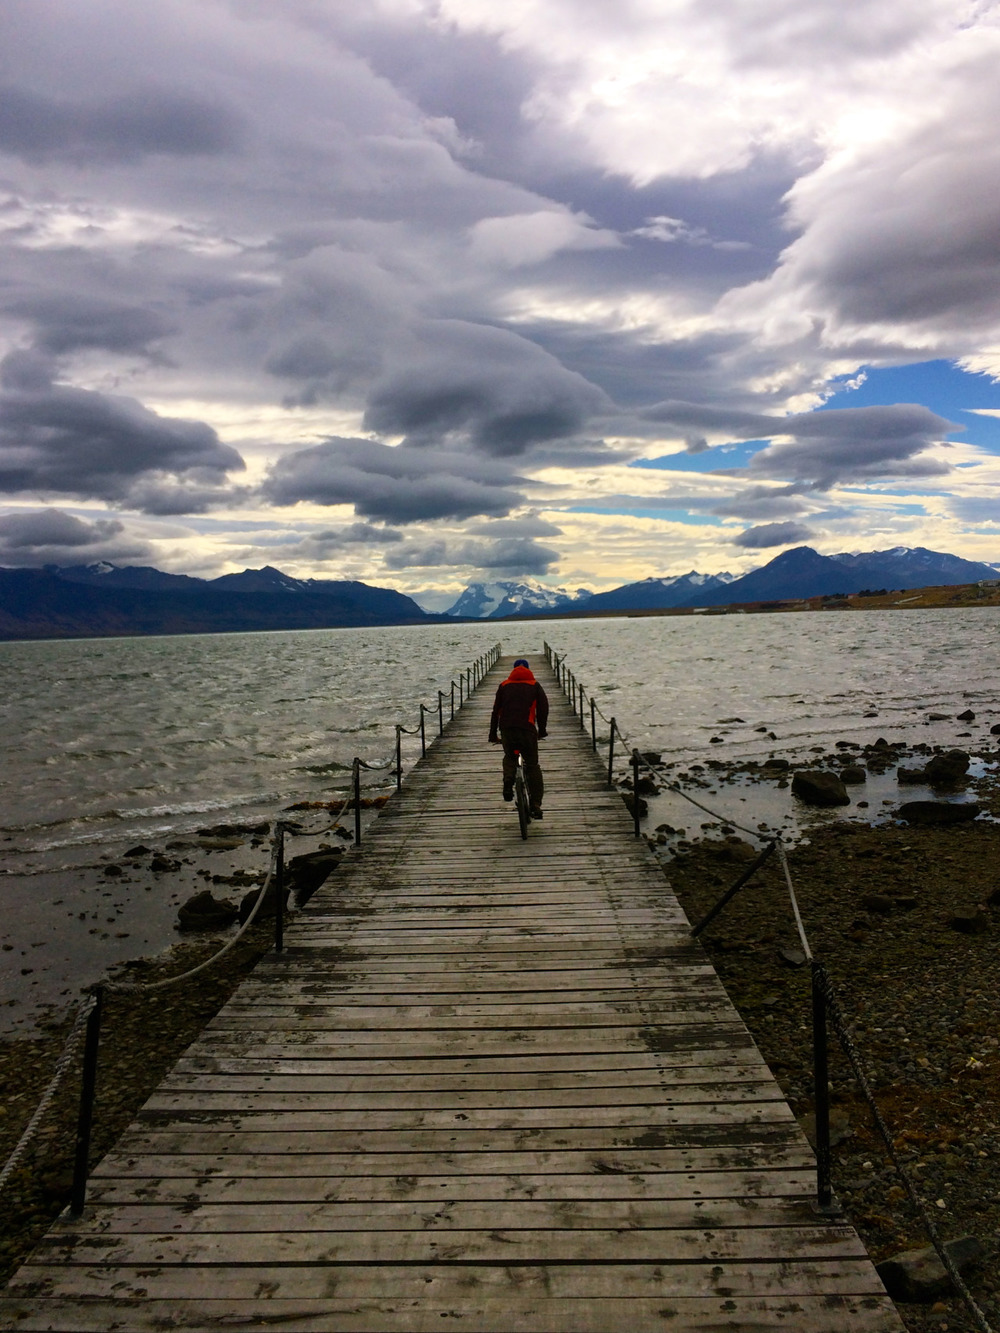 Biking to the end of the earth. Patagonia, Chile. February 2015. Photo copyright Silvie Snow-Thomas.